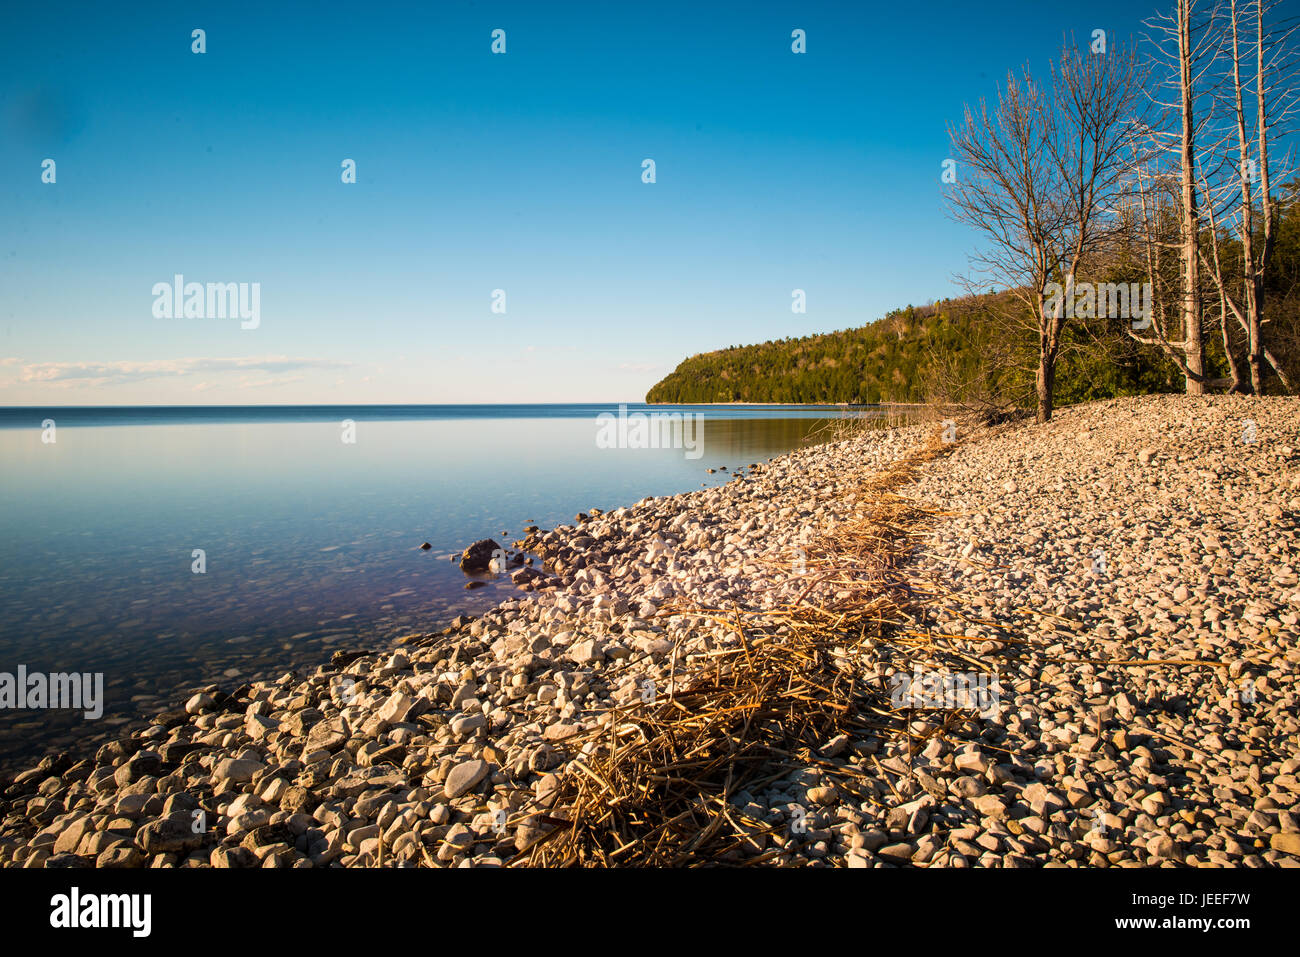 Like A Mirror High Resolution Stock Photography And Images Alamy